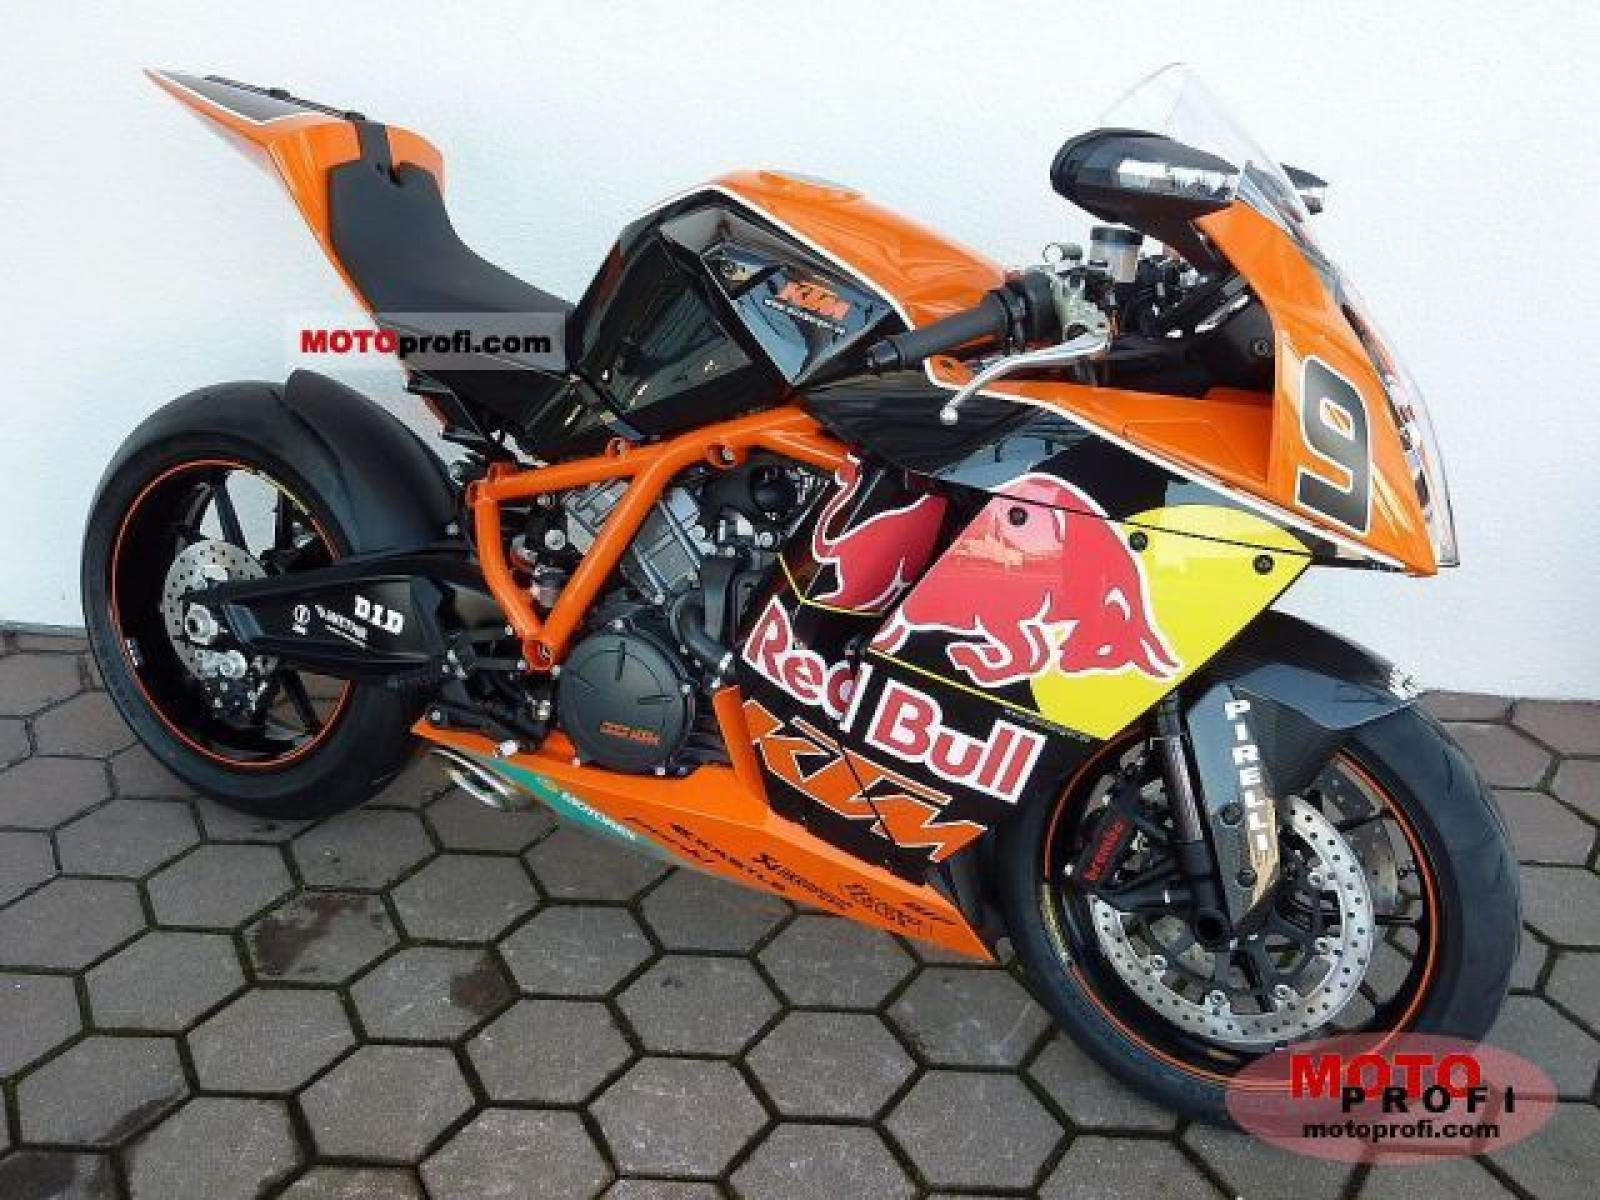 KTM 1190 RC8 R Red Bull Limited Edition 2010 images #86763